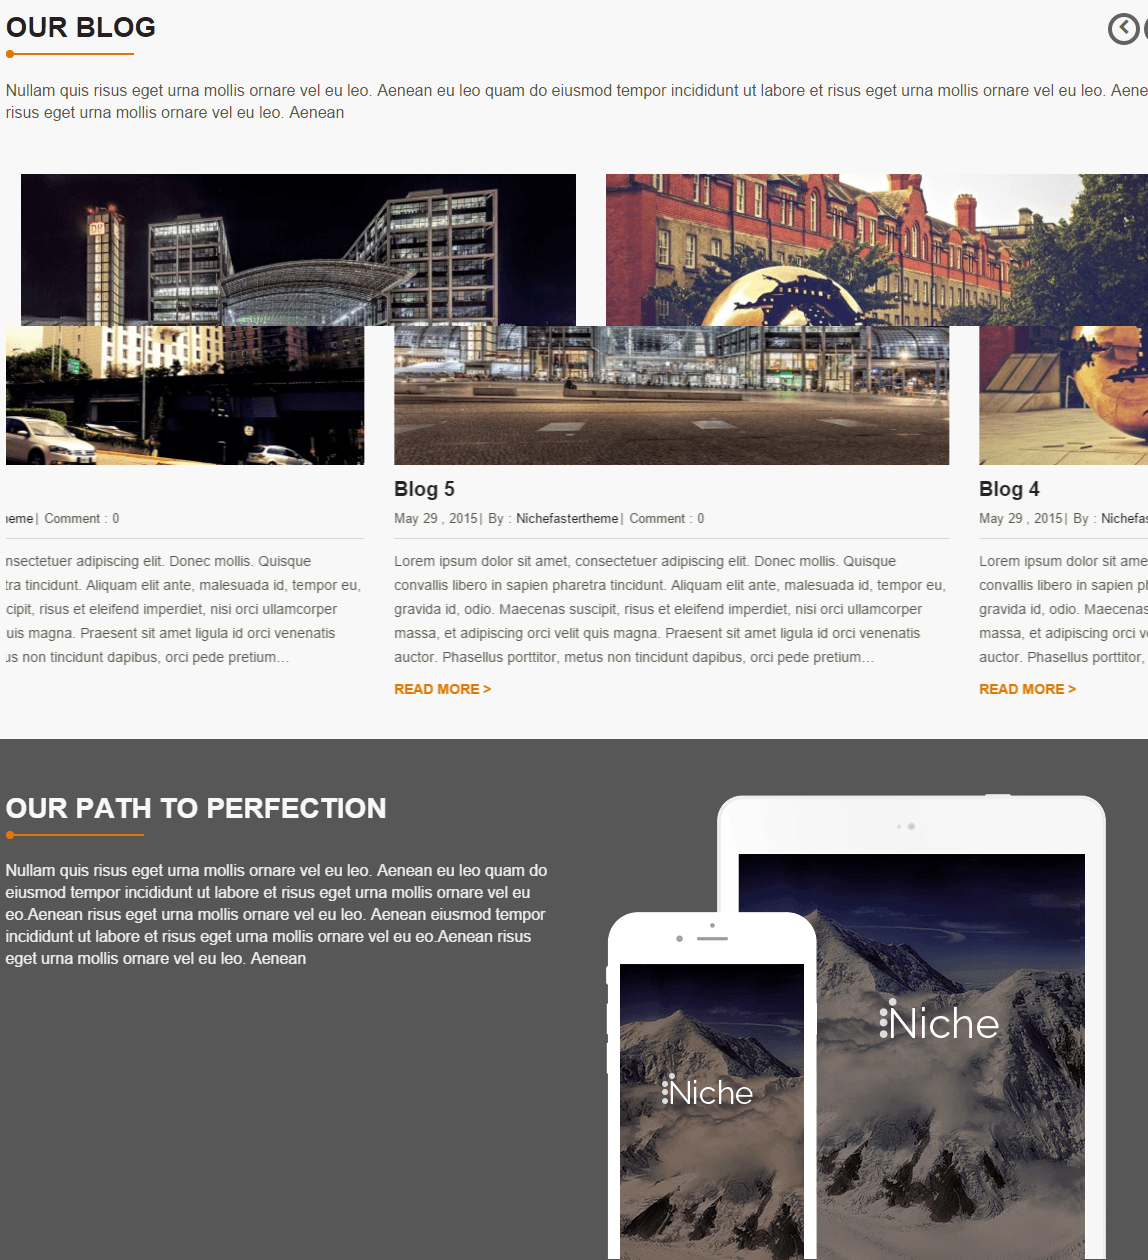 Niche- Front page of this theme featured with blog posts